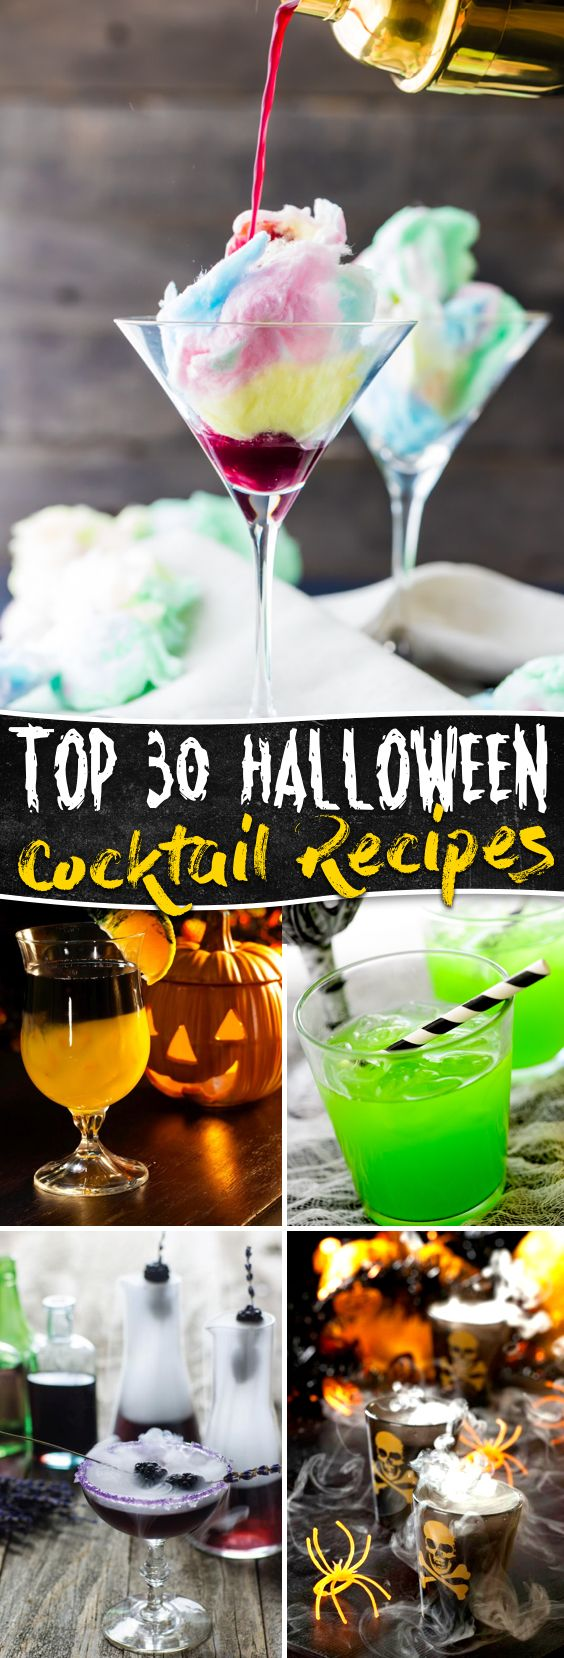 These 30 Halloween Cocktail Recipes Are Synonymous to True Spookiness